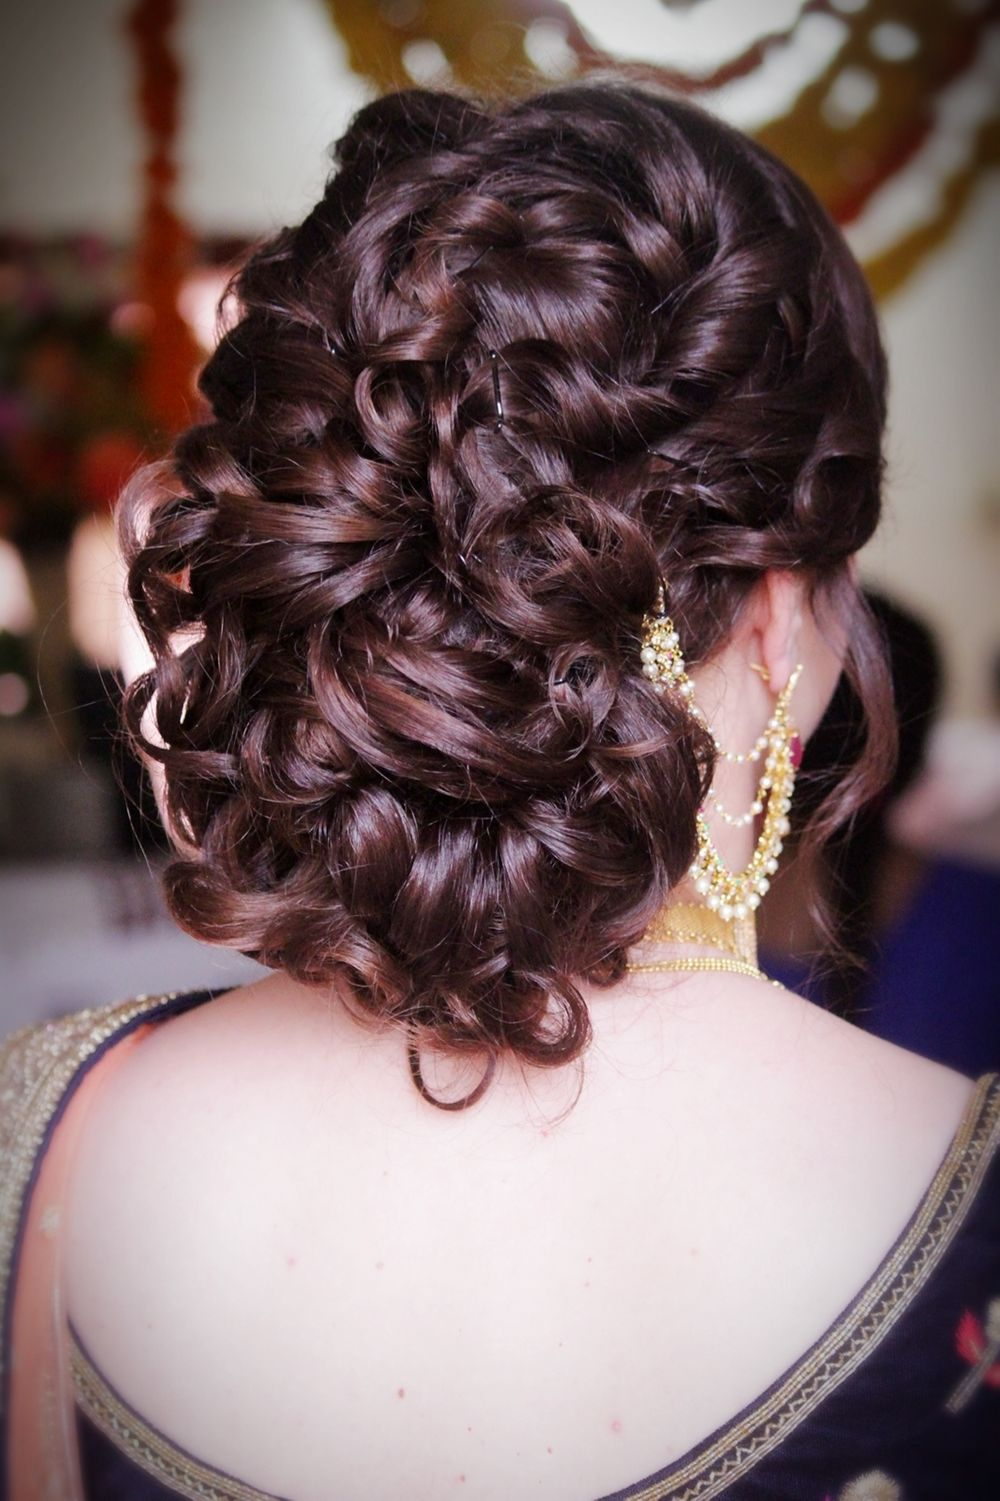 Photo of Wavy bun hairstyle for bride sister or mother